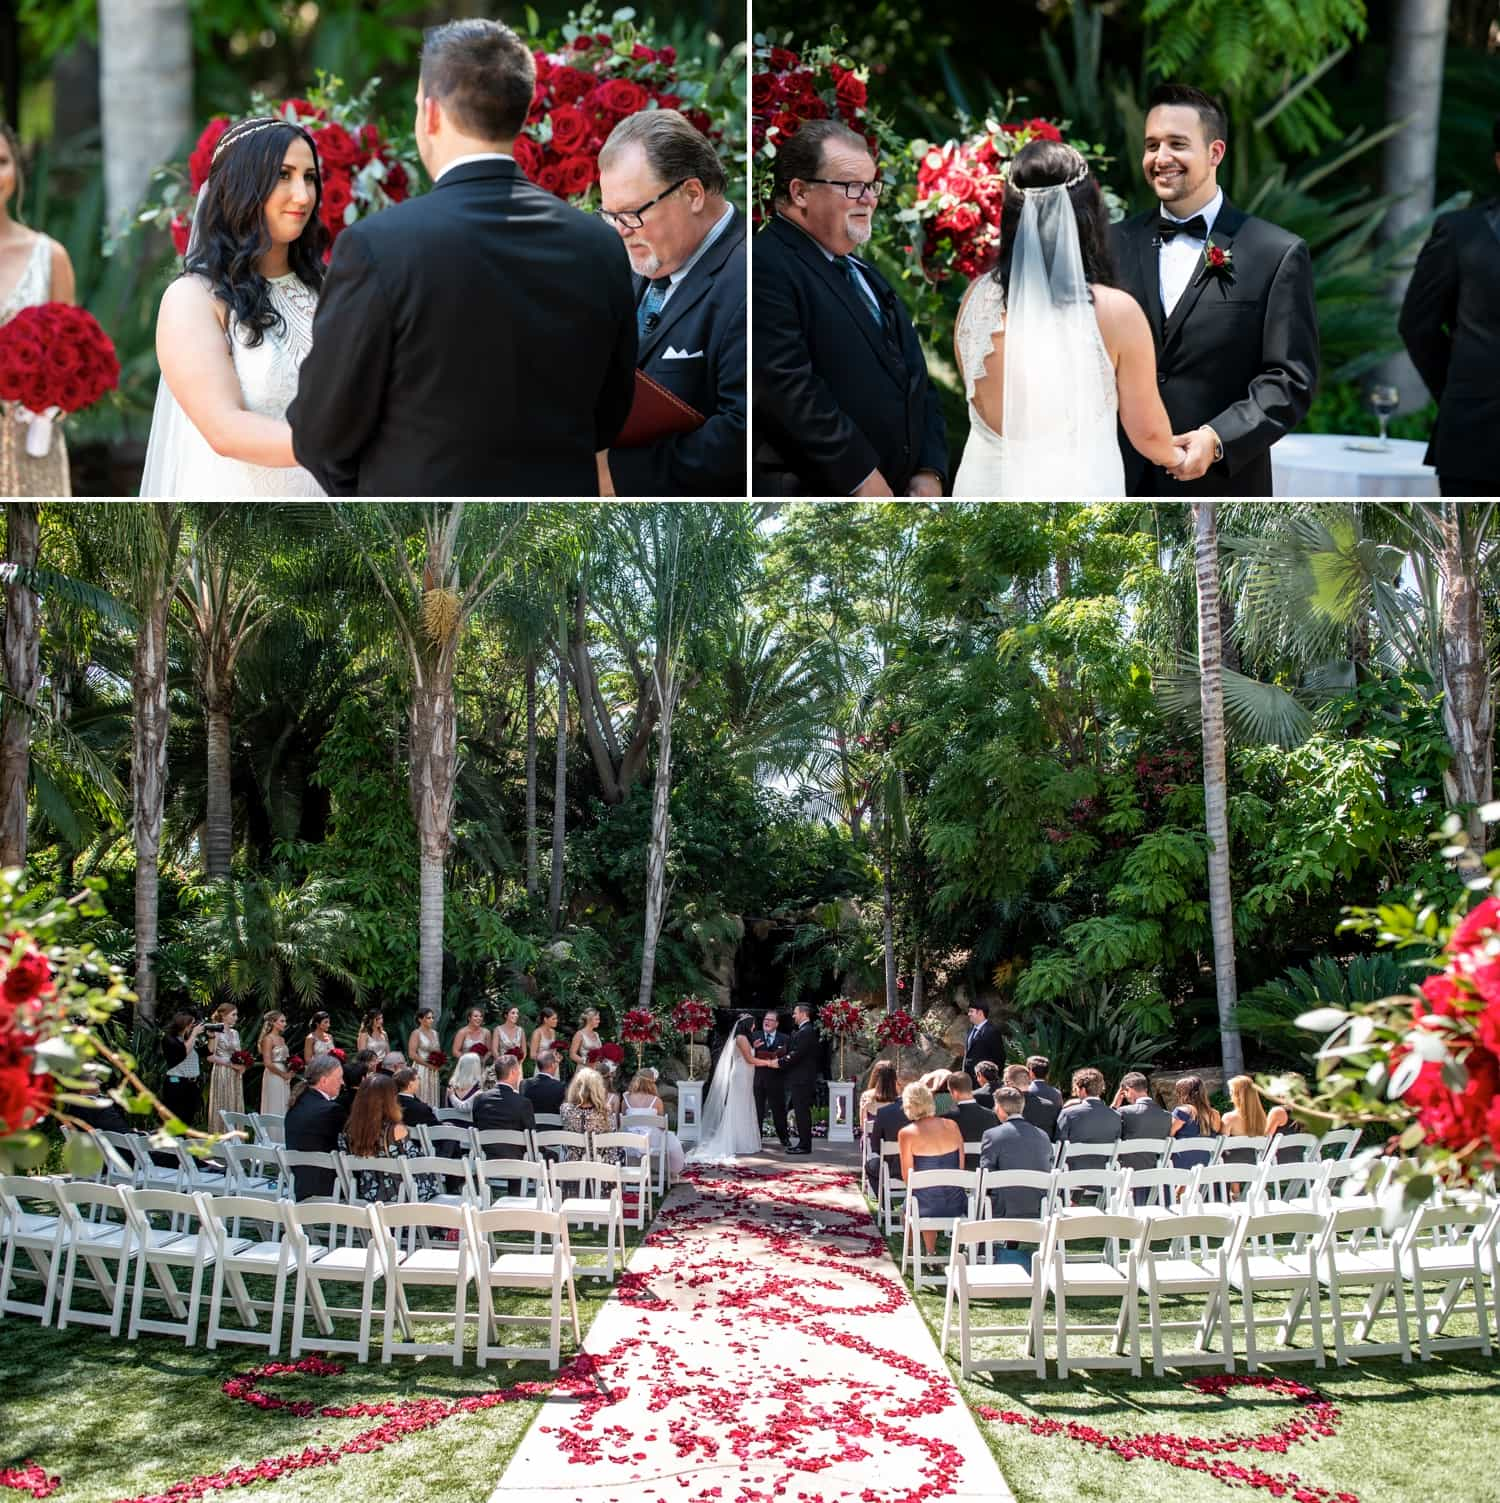 Wedding ceremony at Grand Tradition Estate.